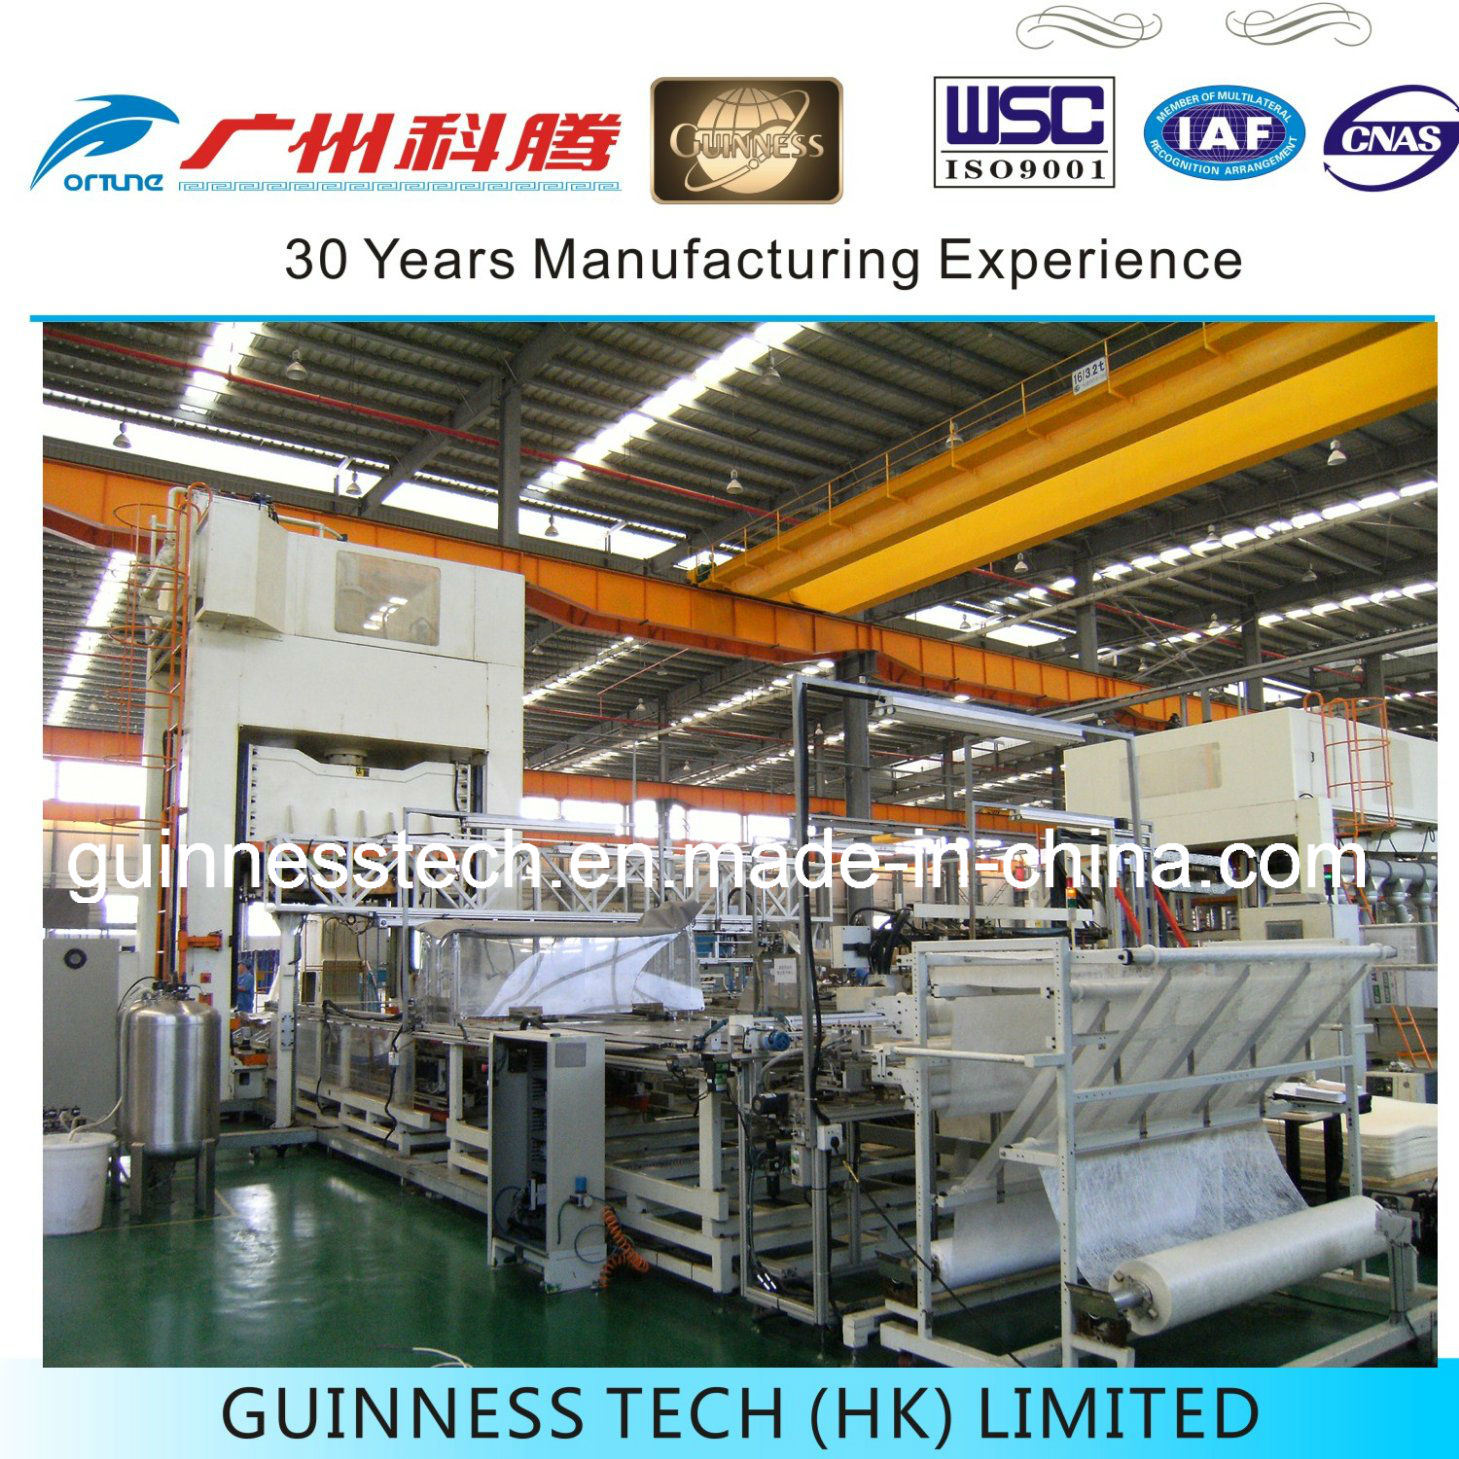 Automotive Headliner Wet System Production Equipment with Automation System